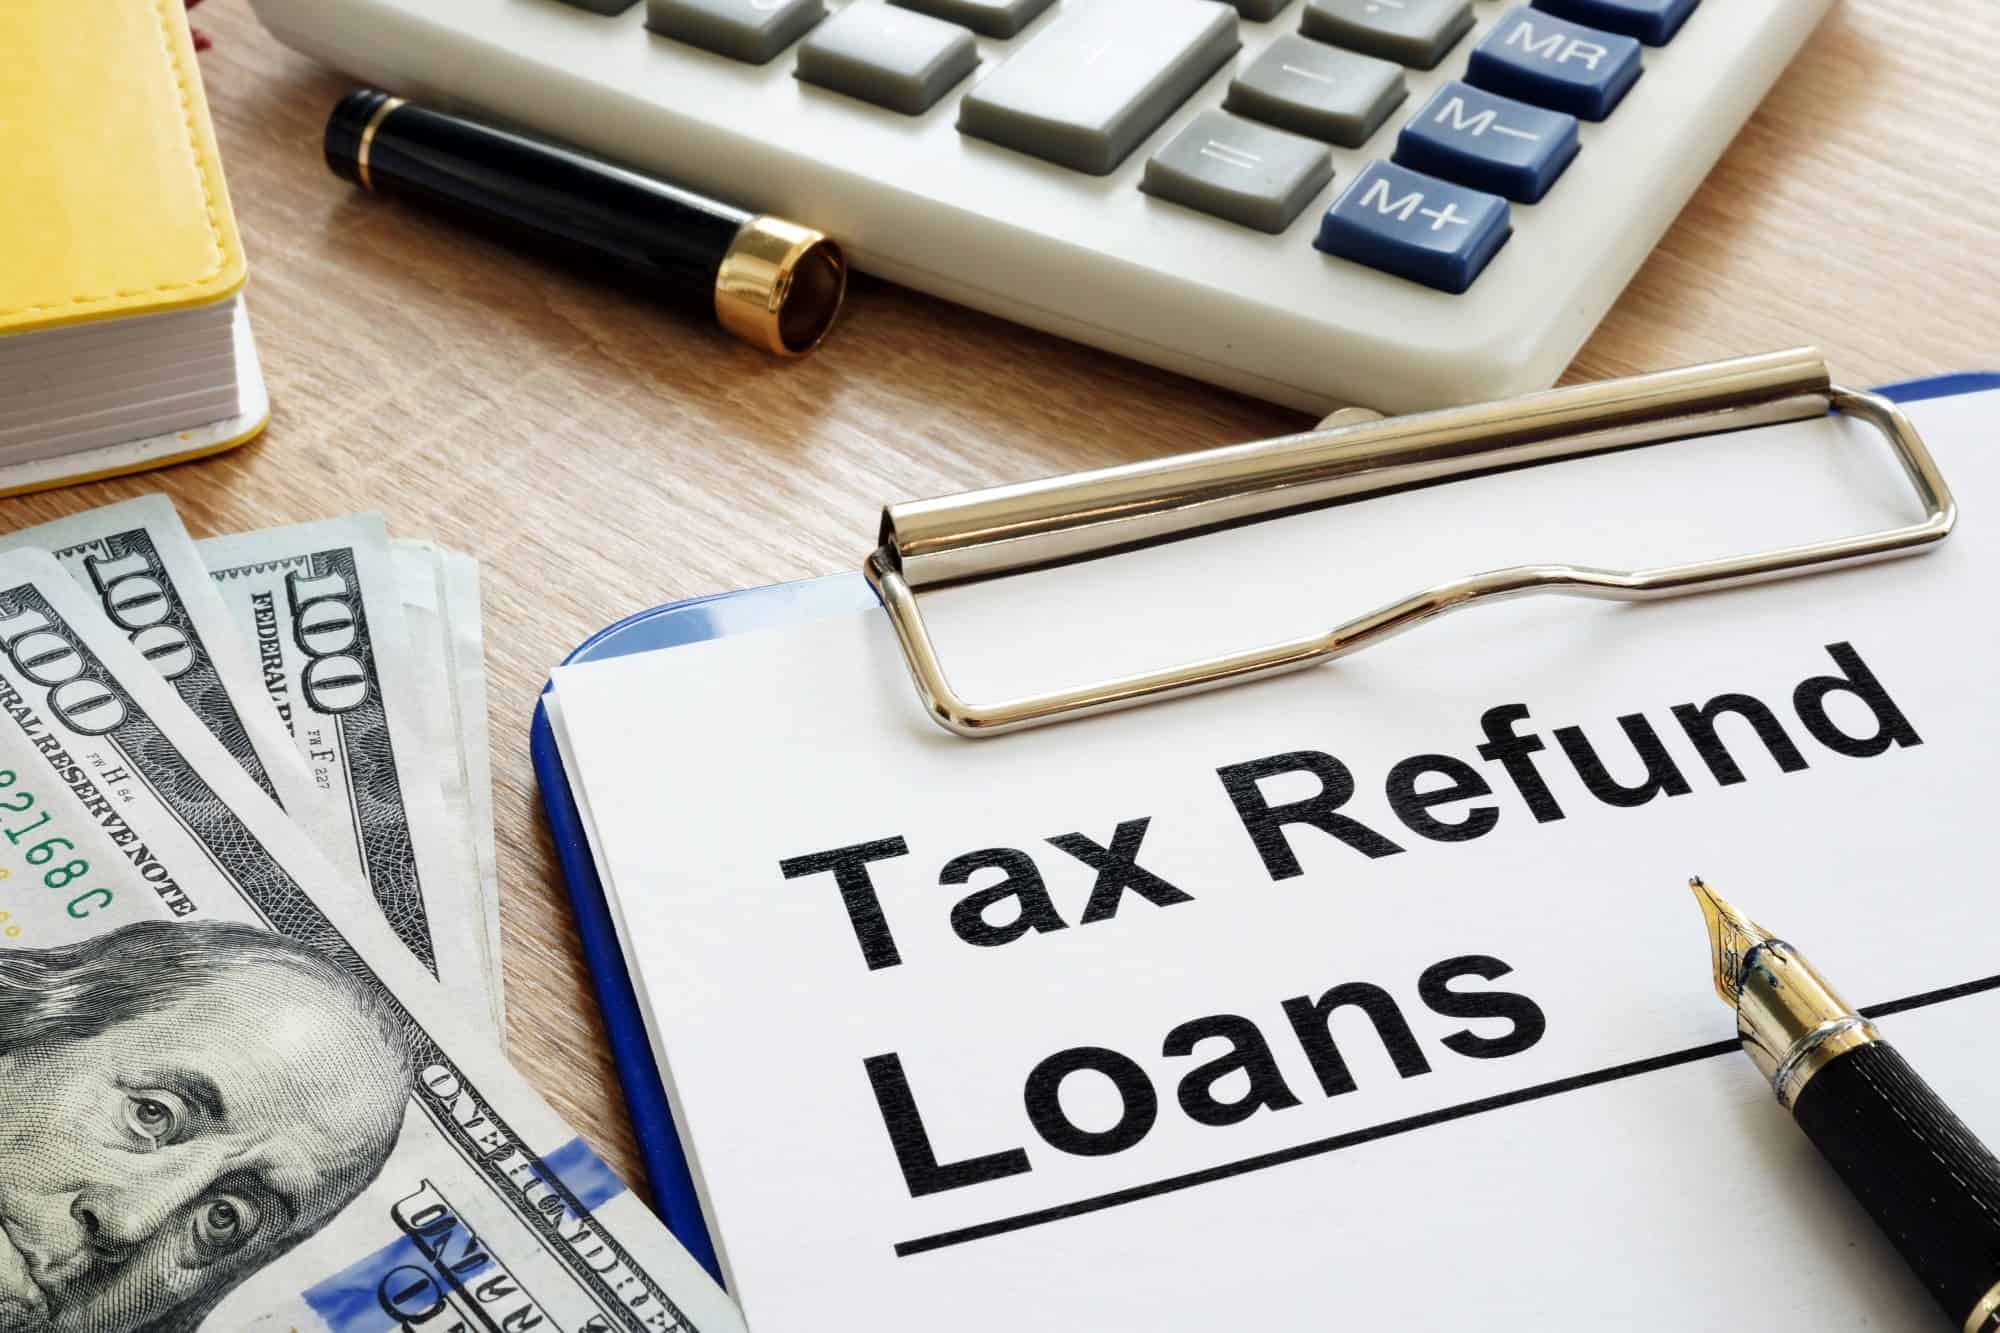 Where Can I Get a Tax Refund Loan?